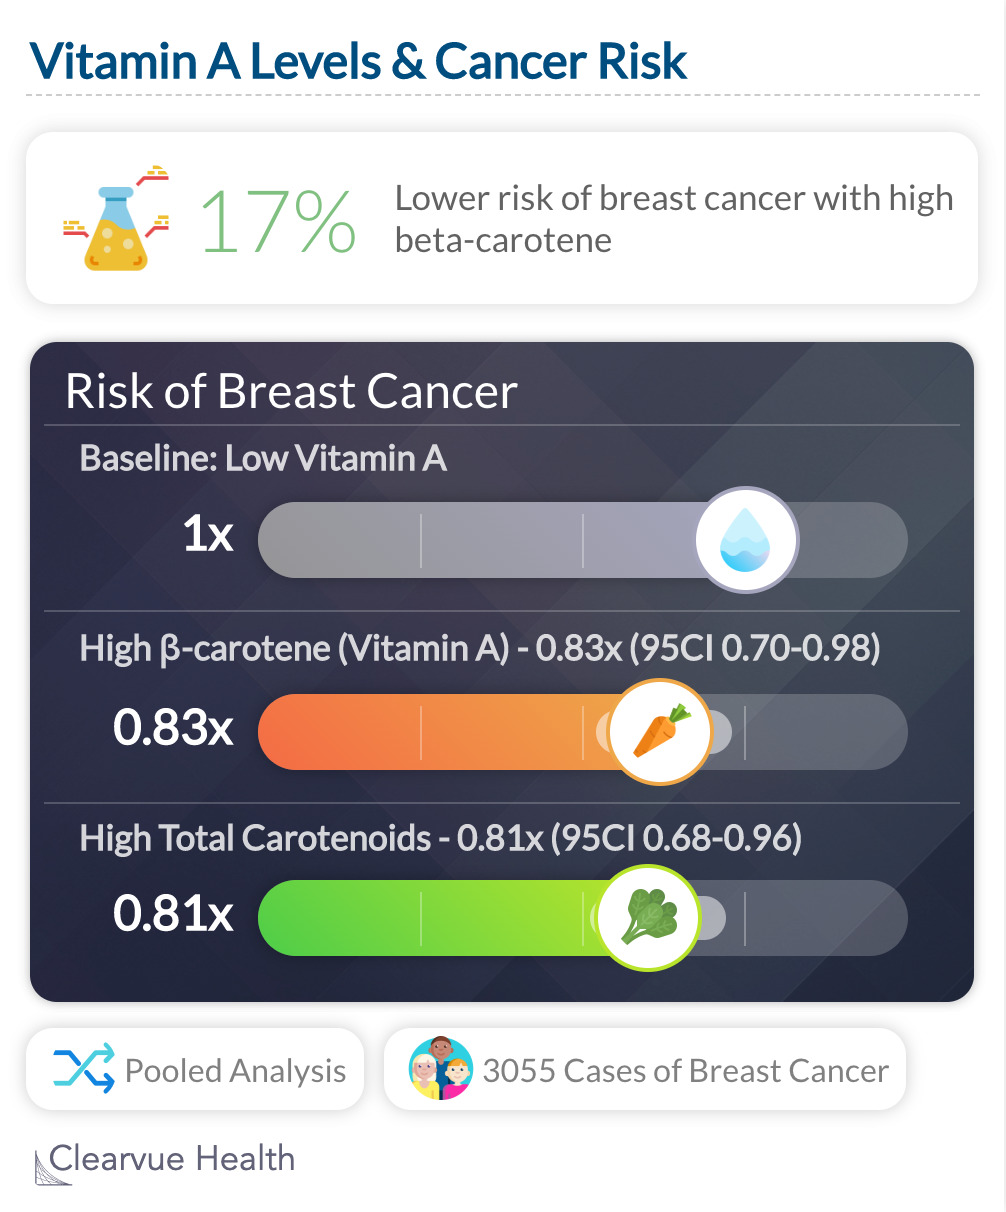 Vitamin A Levels & Cancer Risk